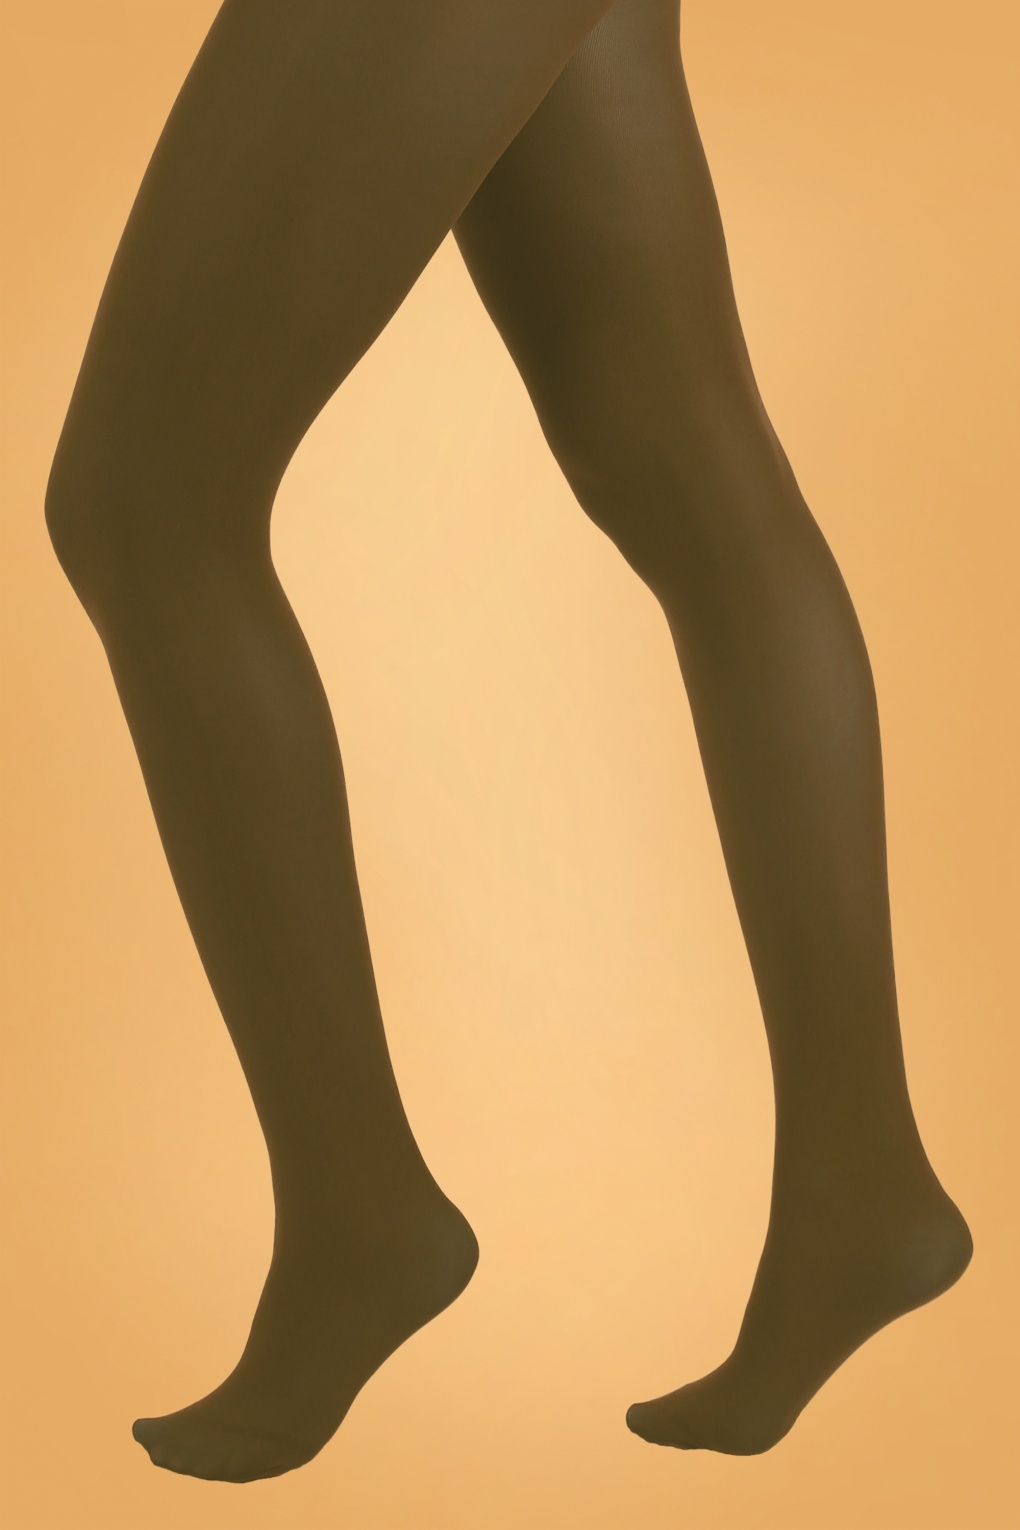 1960s Tights, Stockings, Panty Hose, Knee High Socks 60s Opaque Tights in Dark Olive £7.07 AT vintagedancer.com